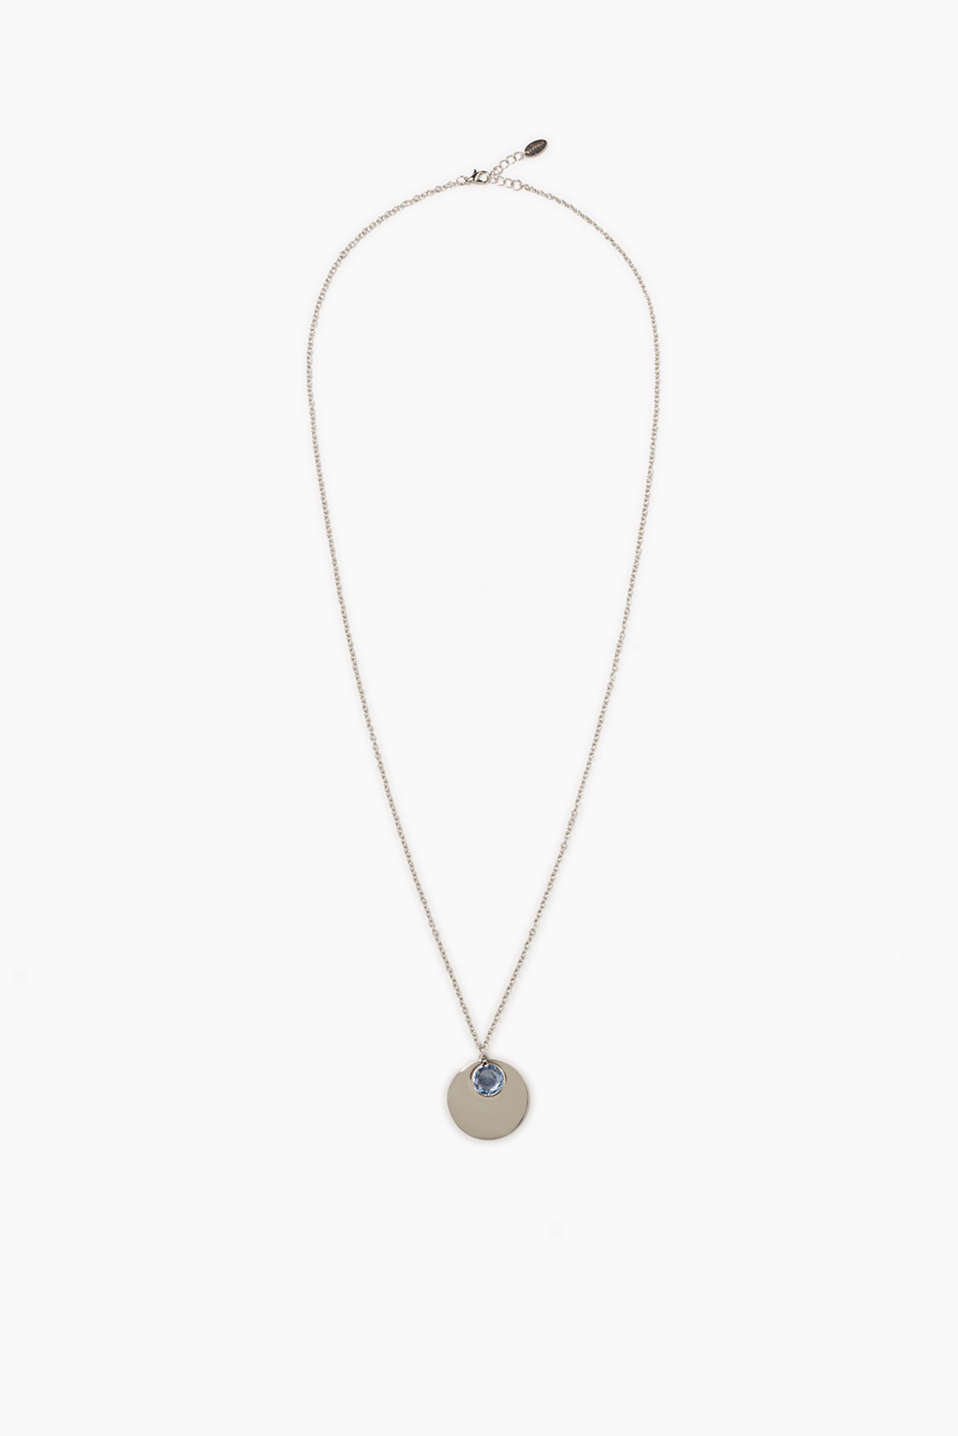 Long necklace with a round tag and a blue facet-cut stone